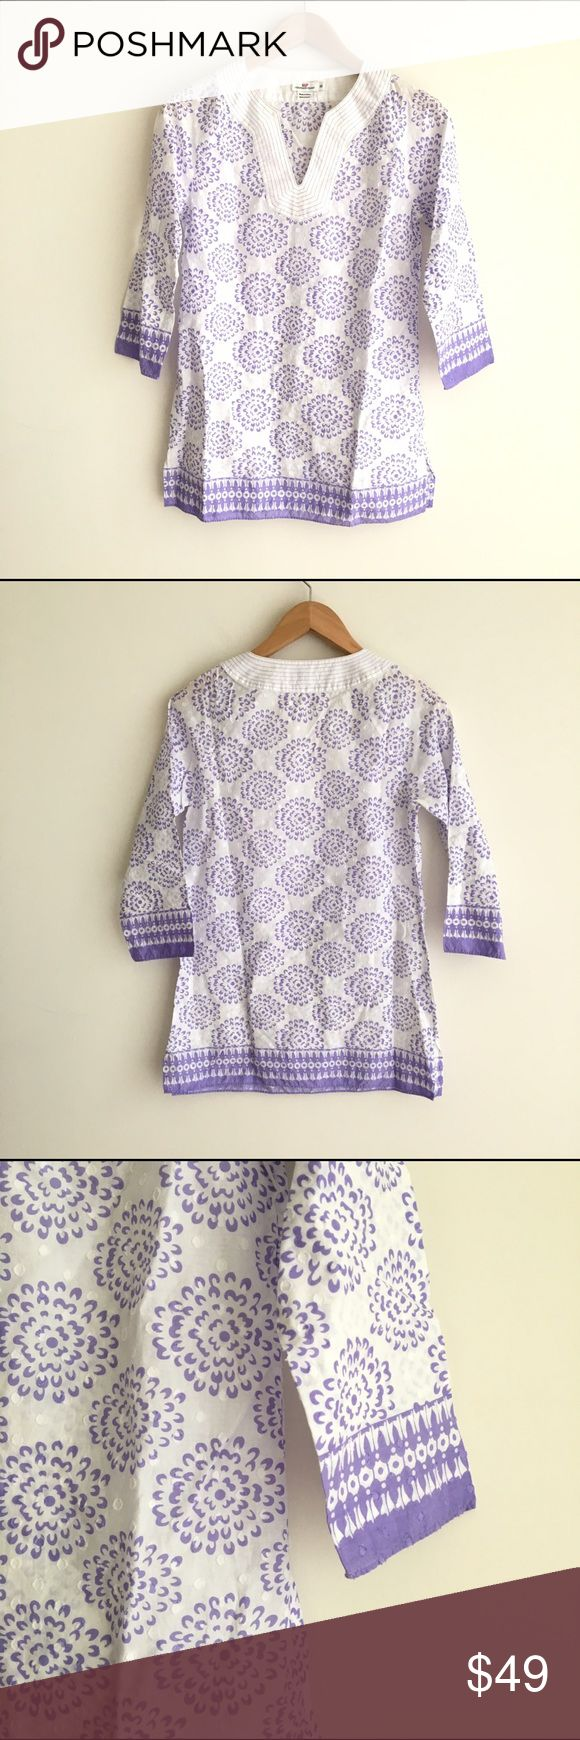 Vineyard Vines Purple Printed Cotton Tunic Top Light purple/lavender and white printed style. Loose fit through body. V neckline. Subtle dot print in fabric. Excellent condition. Vineyard Vines Tops Tunics